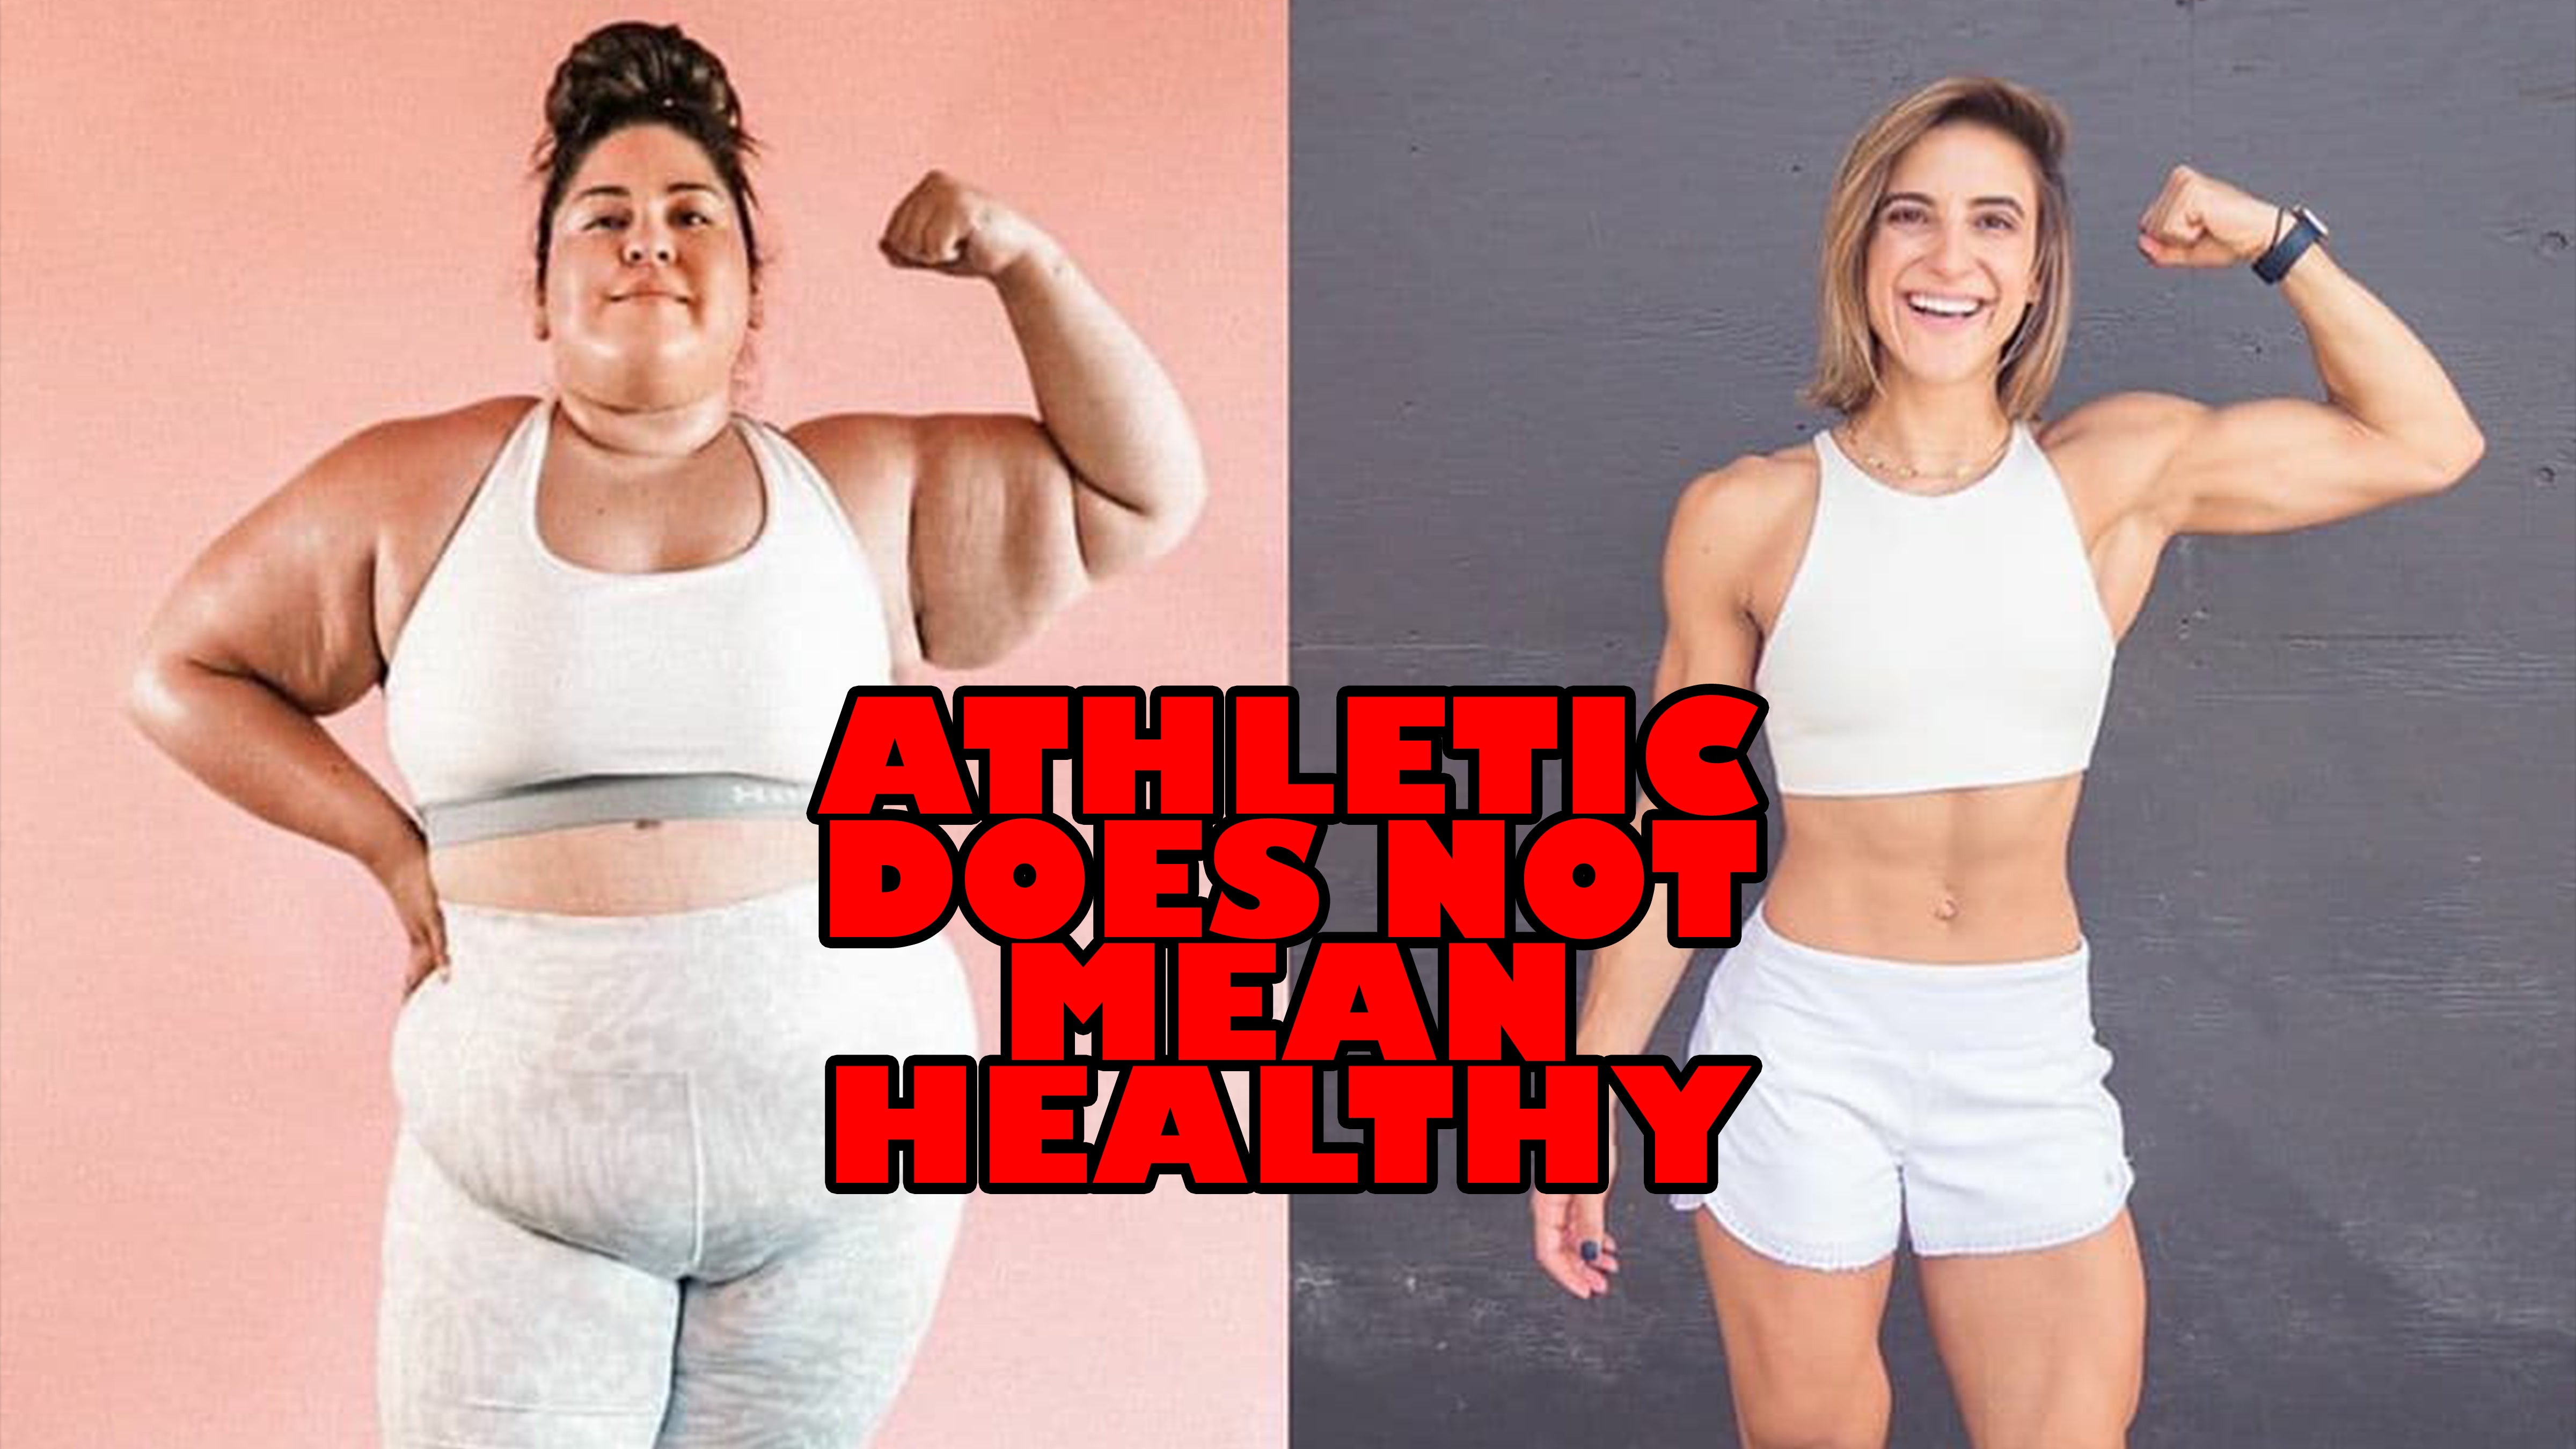 Meg Boggs and the Difference Between Being an Athlete and Being Healthy